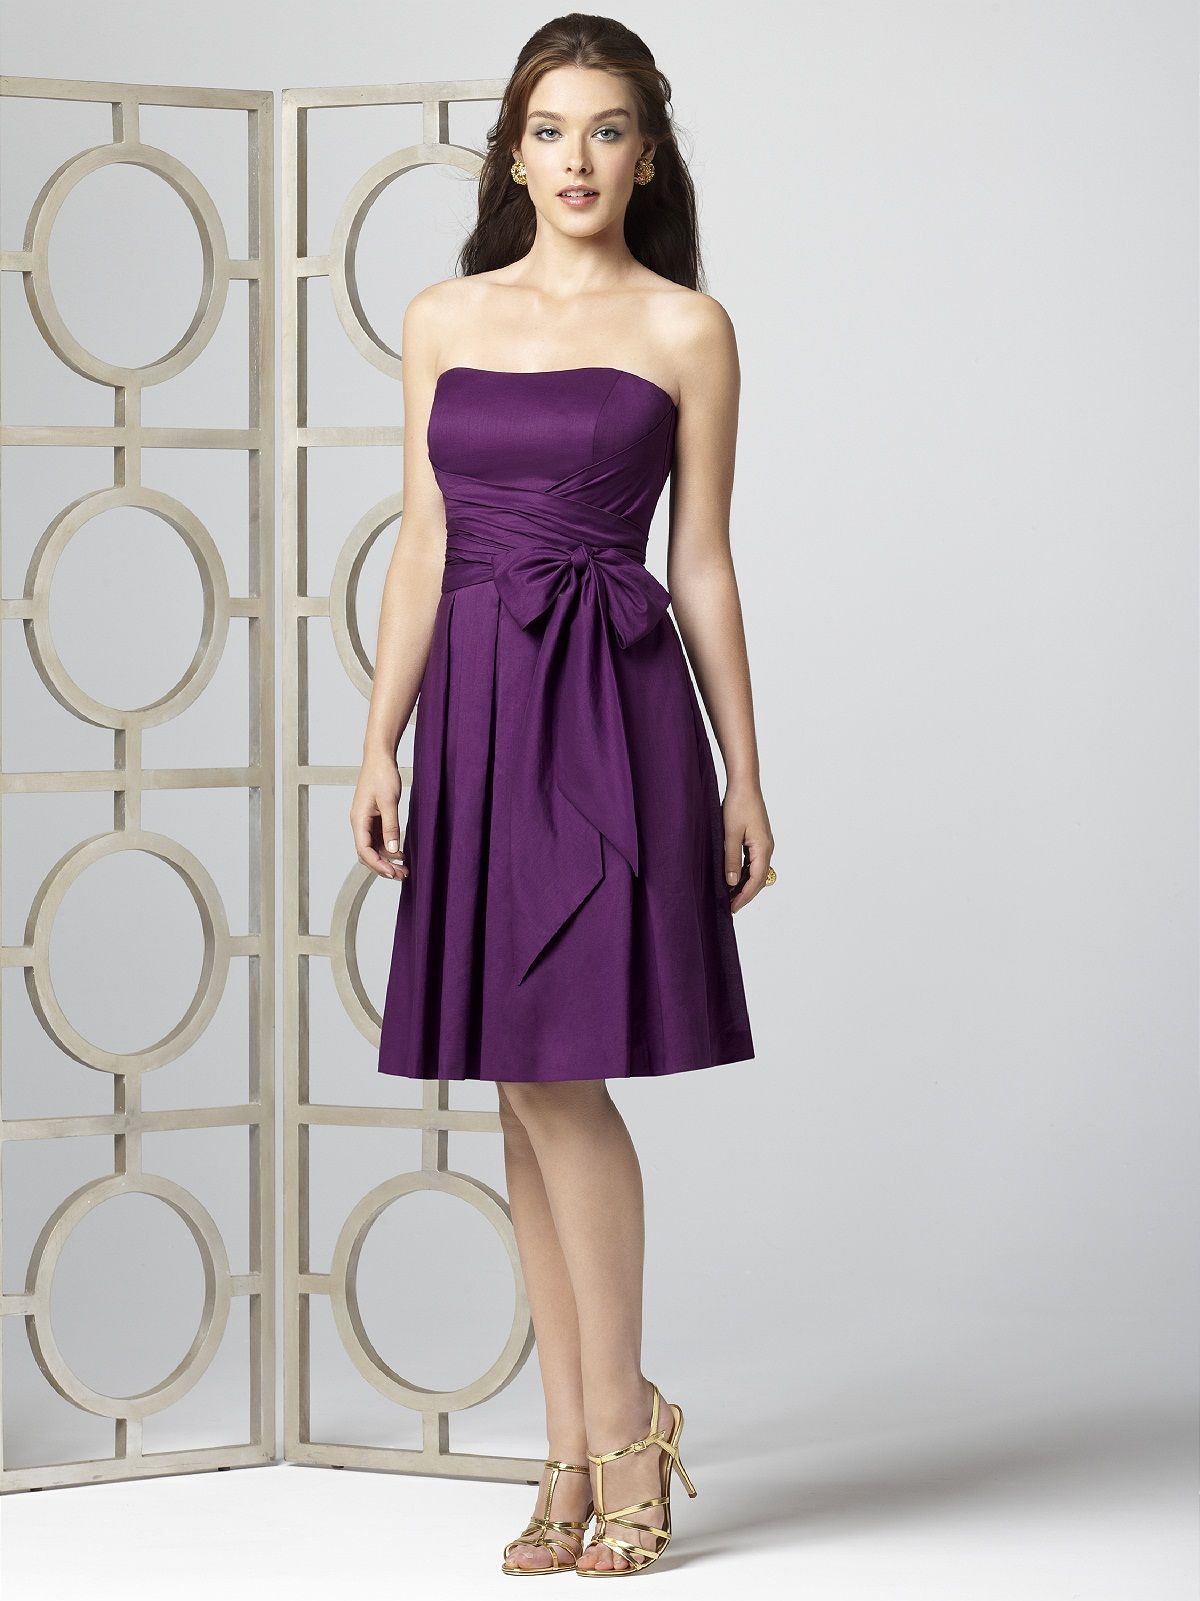 Ways of finding purple bridesmaid dresses 24 dressi short purple bridesmaid dresses ombrellifo Image collections